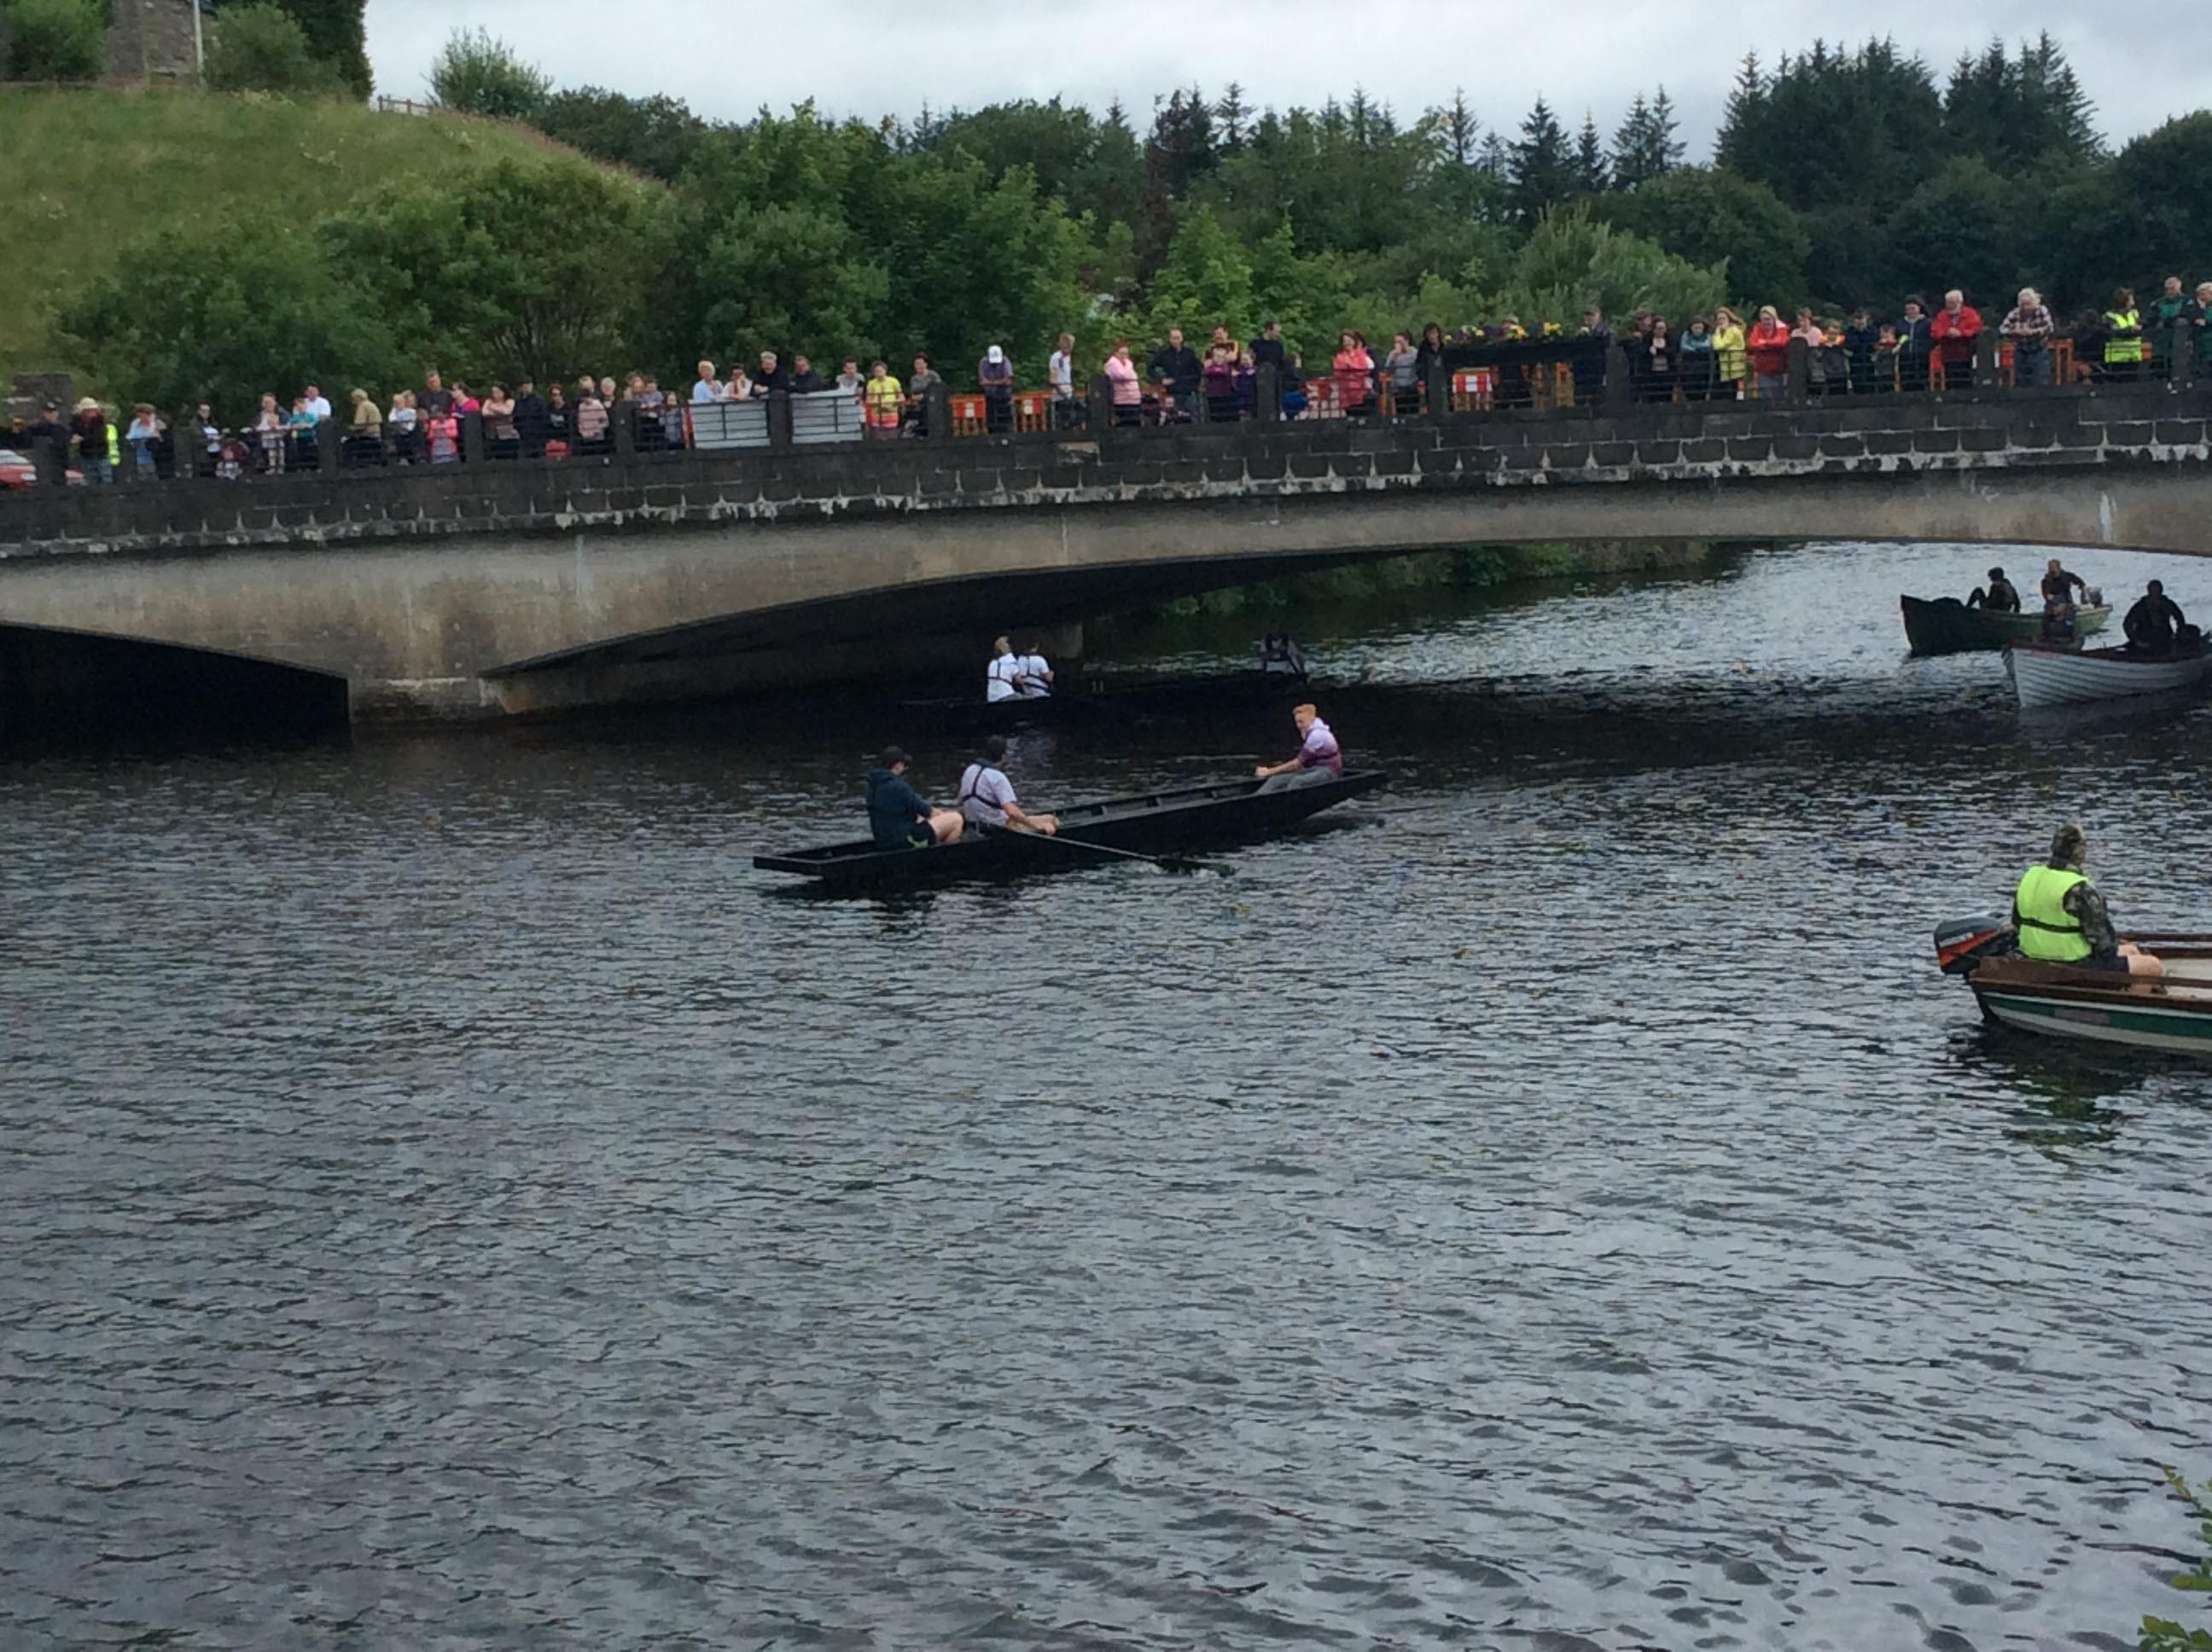 Cot racing set to captivate spectators at Lough Erne Regatta